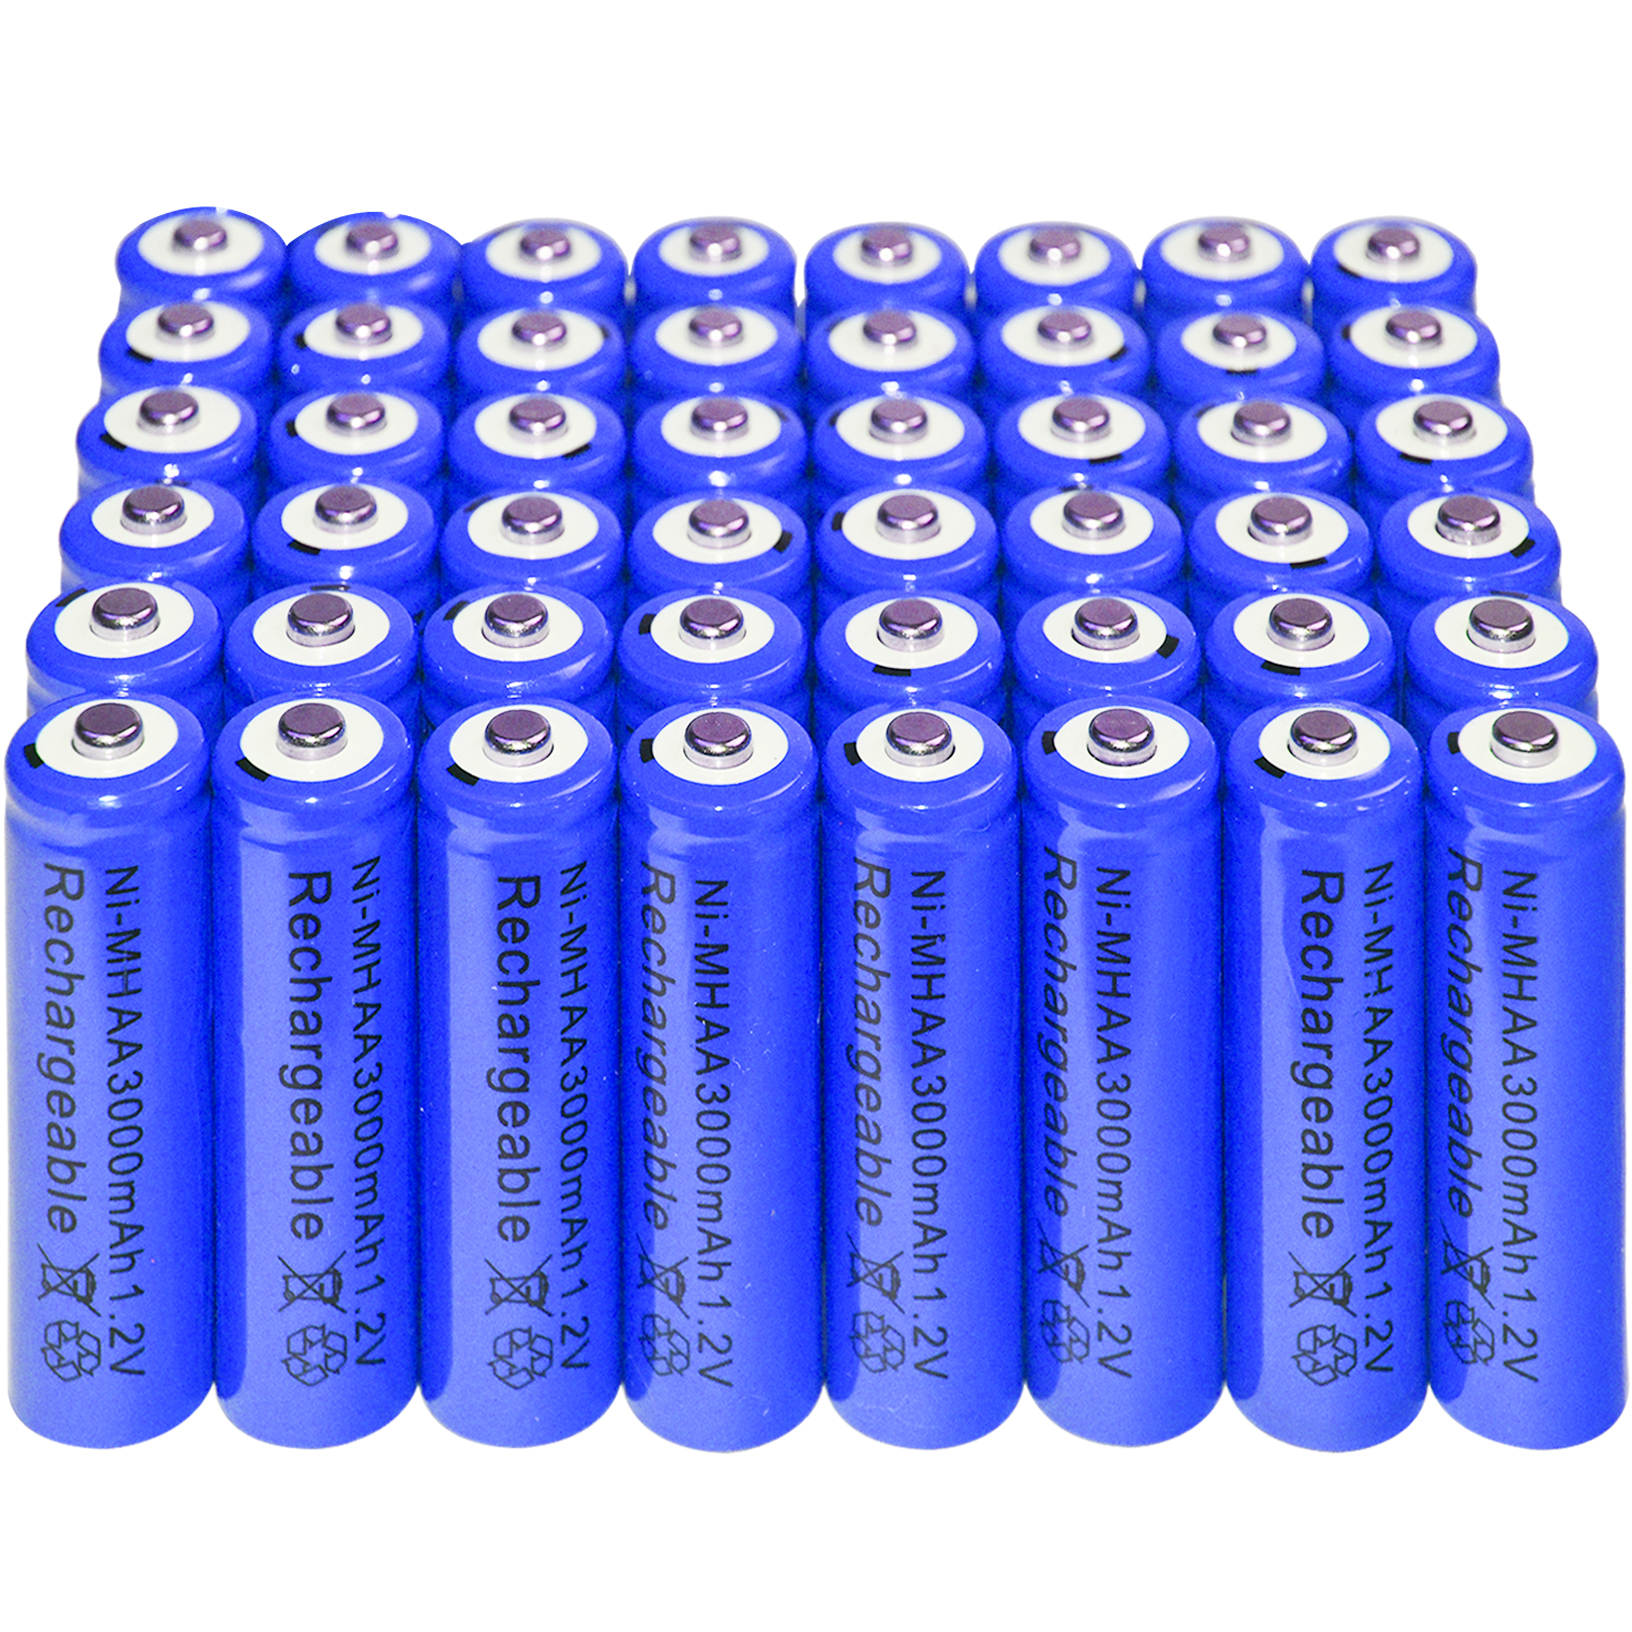 48xAA battery Rechargeable NI-MH 3000mAh 1.2V Blu batteries Bulk Nickel Hydride  <br>